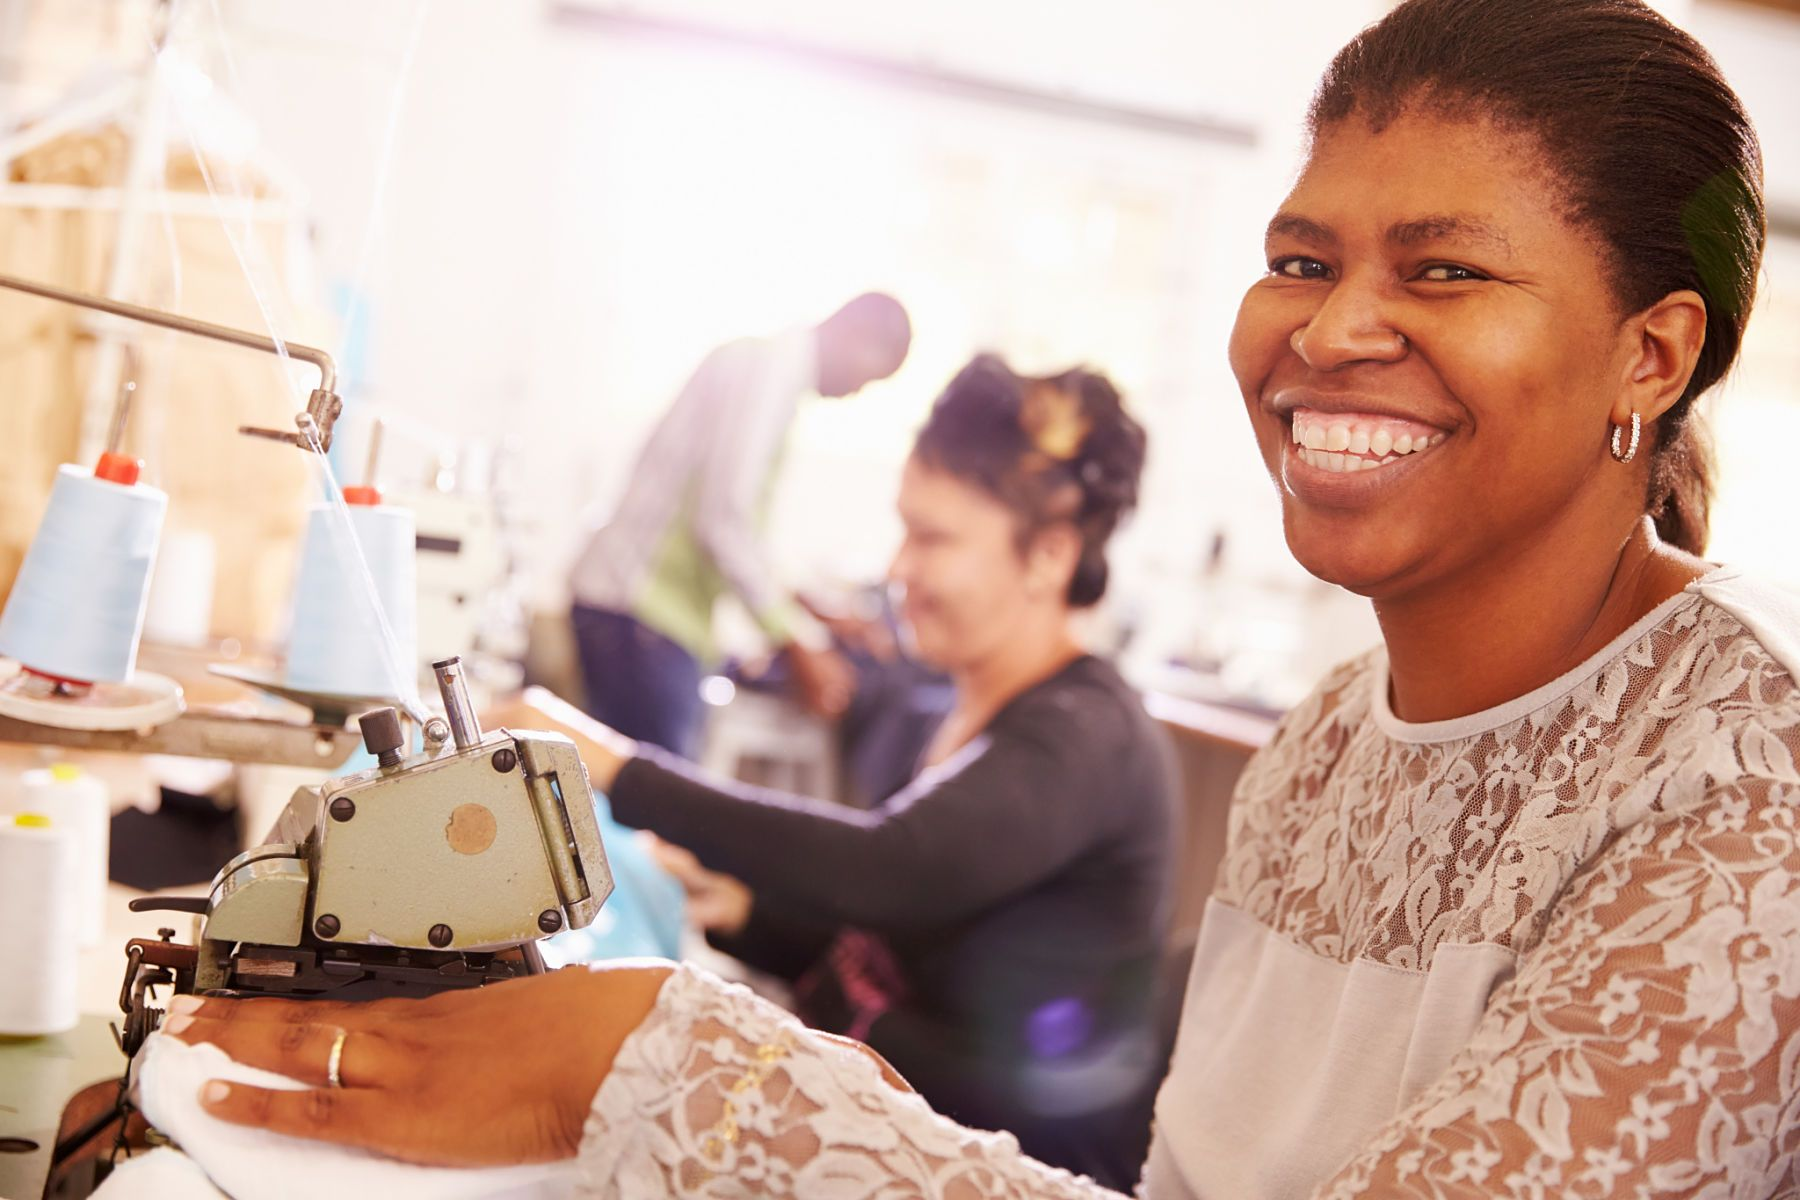 Pin on Jobs in Sewing